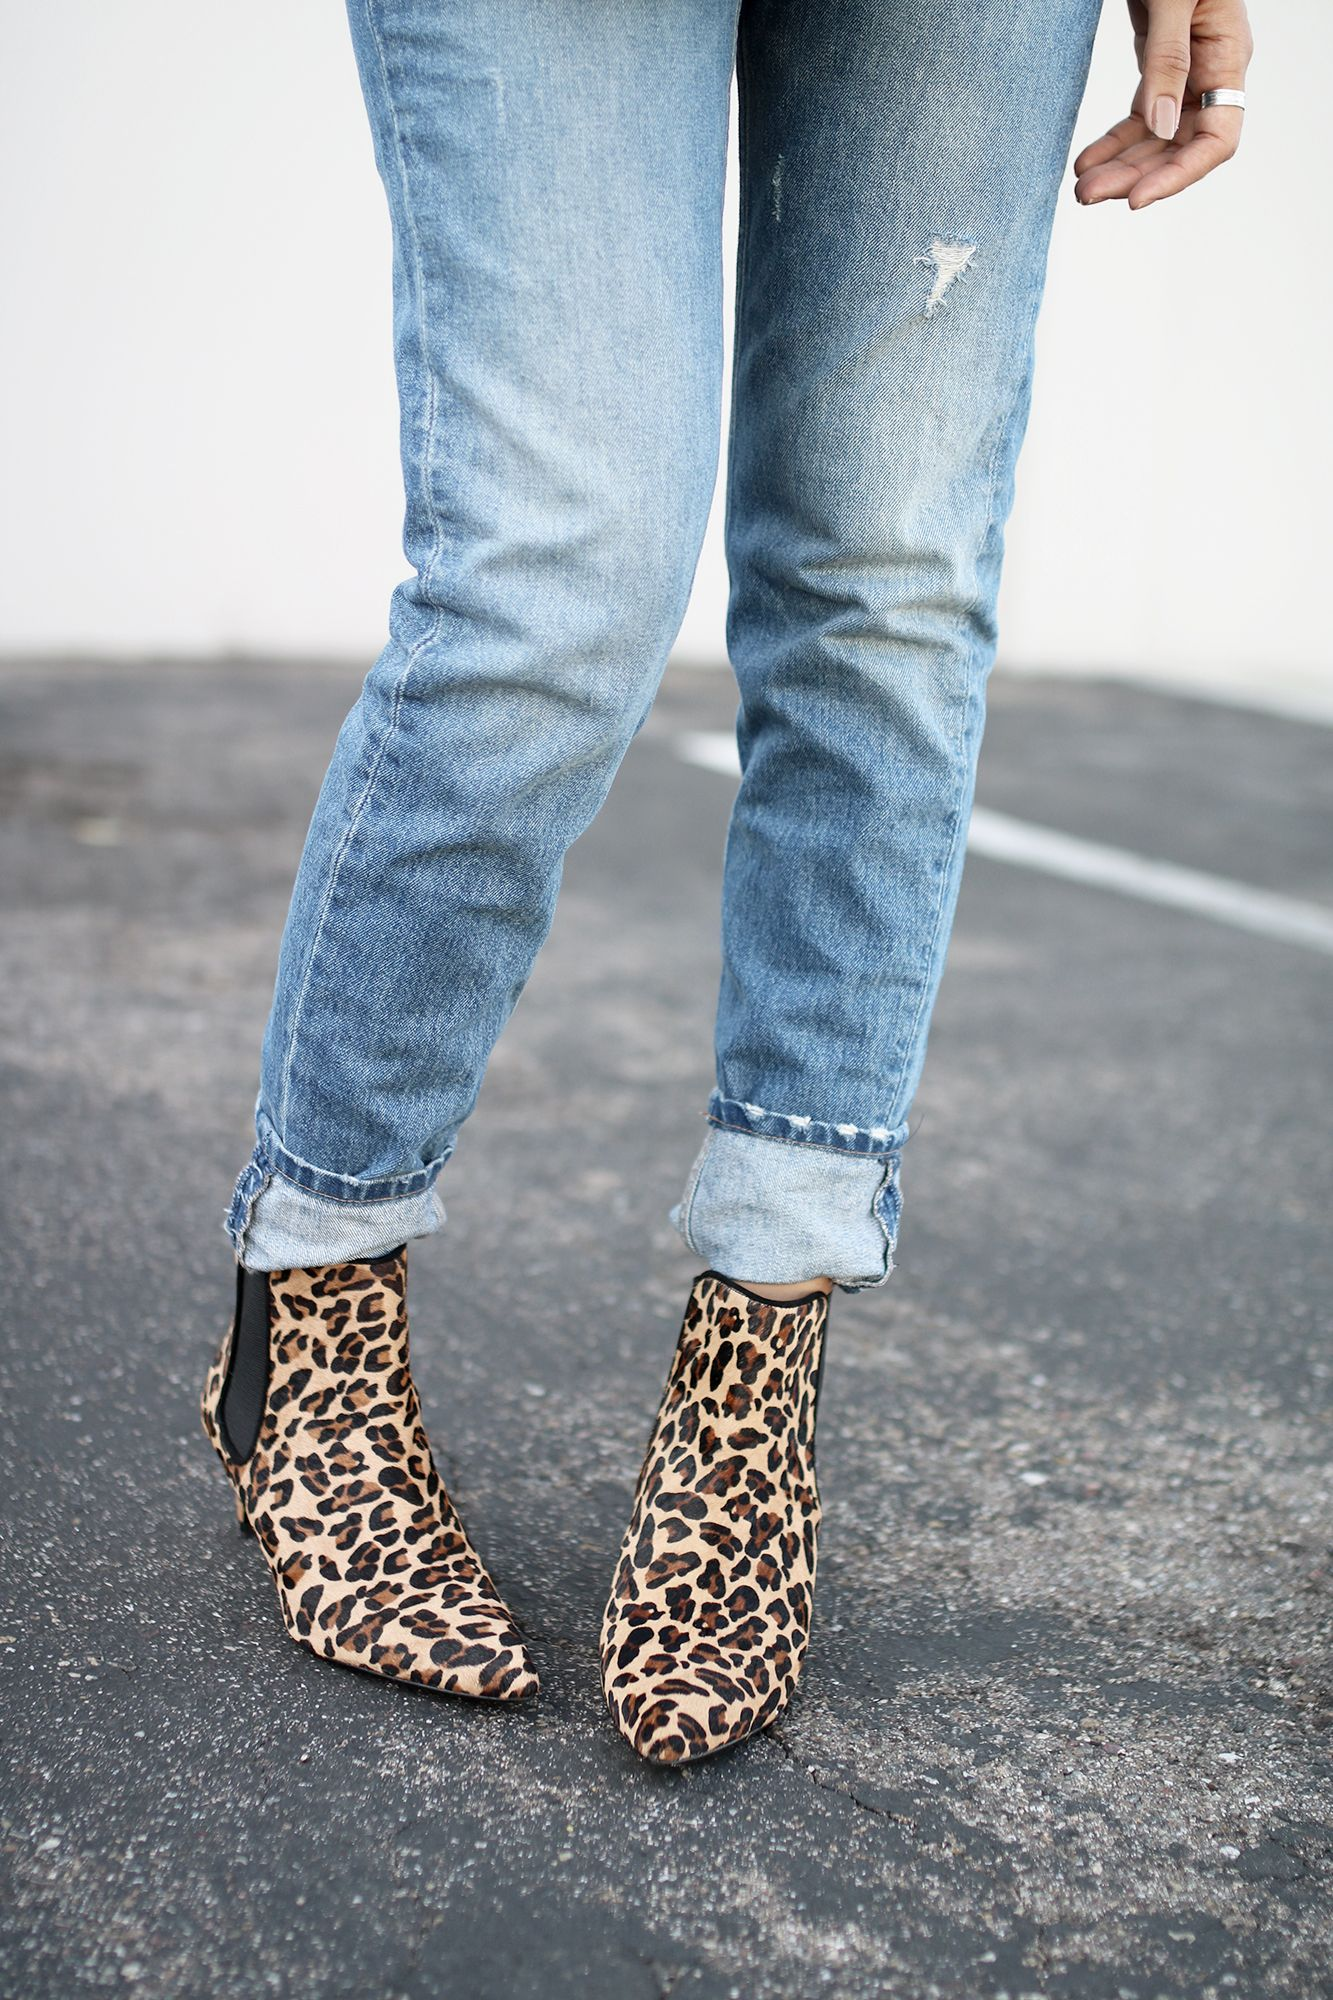 5a83c3168f4a Zara leopard print boots and faded jeans. | Anahis in 2019 | Cuffed ...